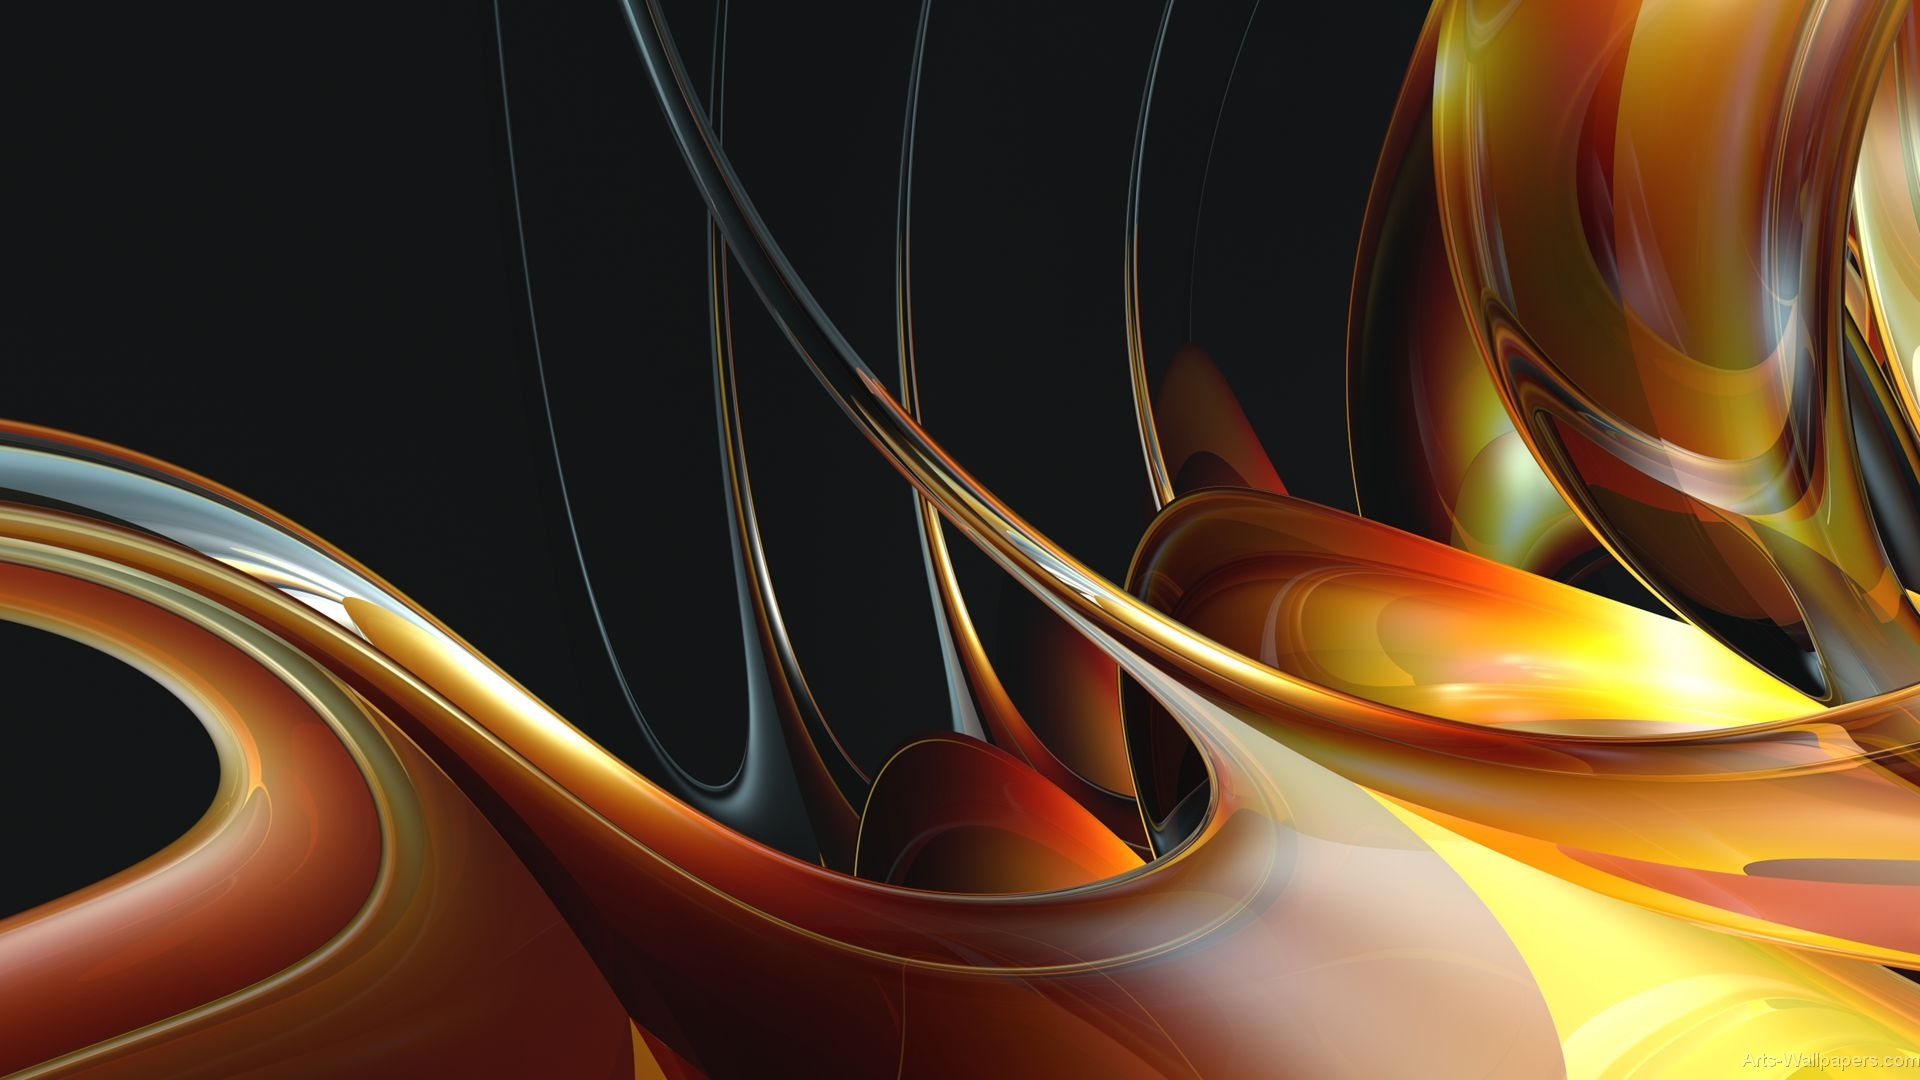 abstract 3d wallpaper 1920x1080 - photo #12